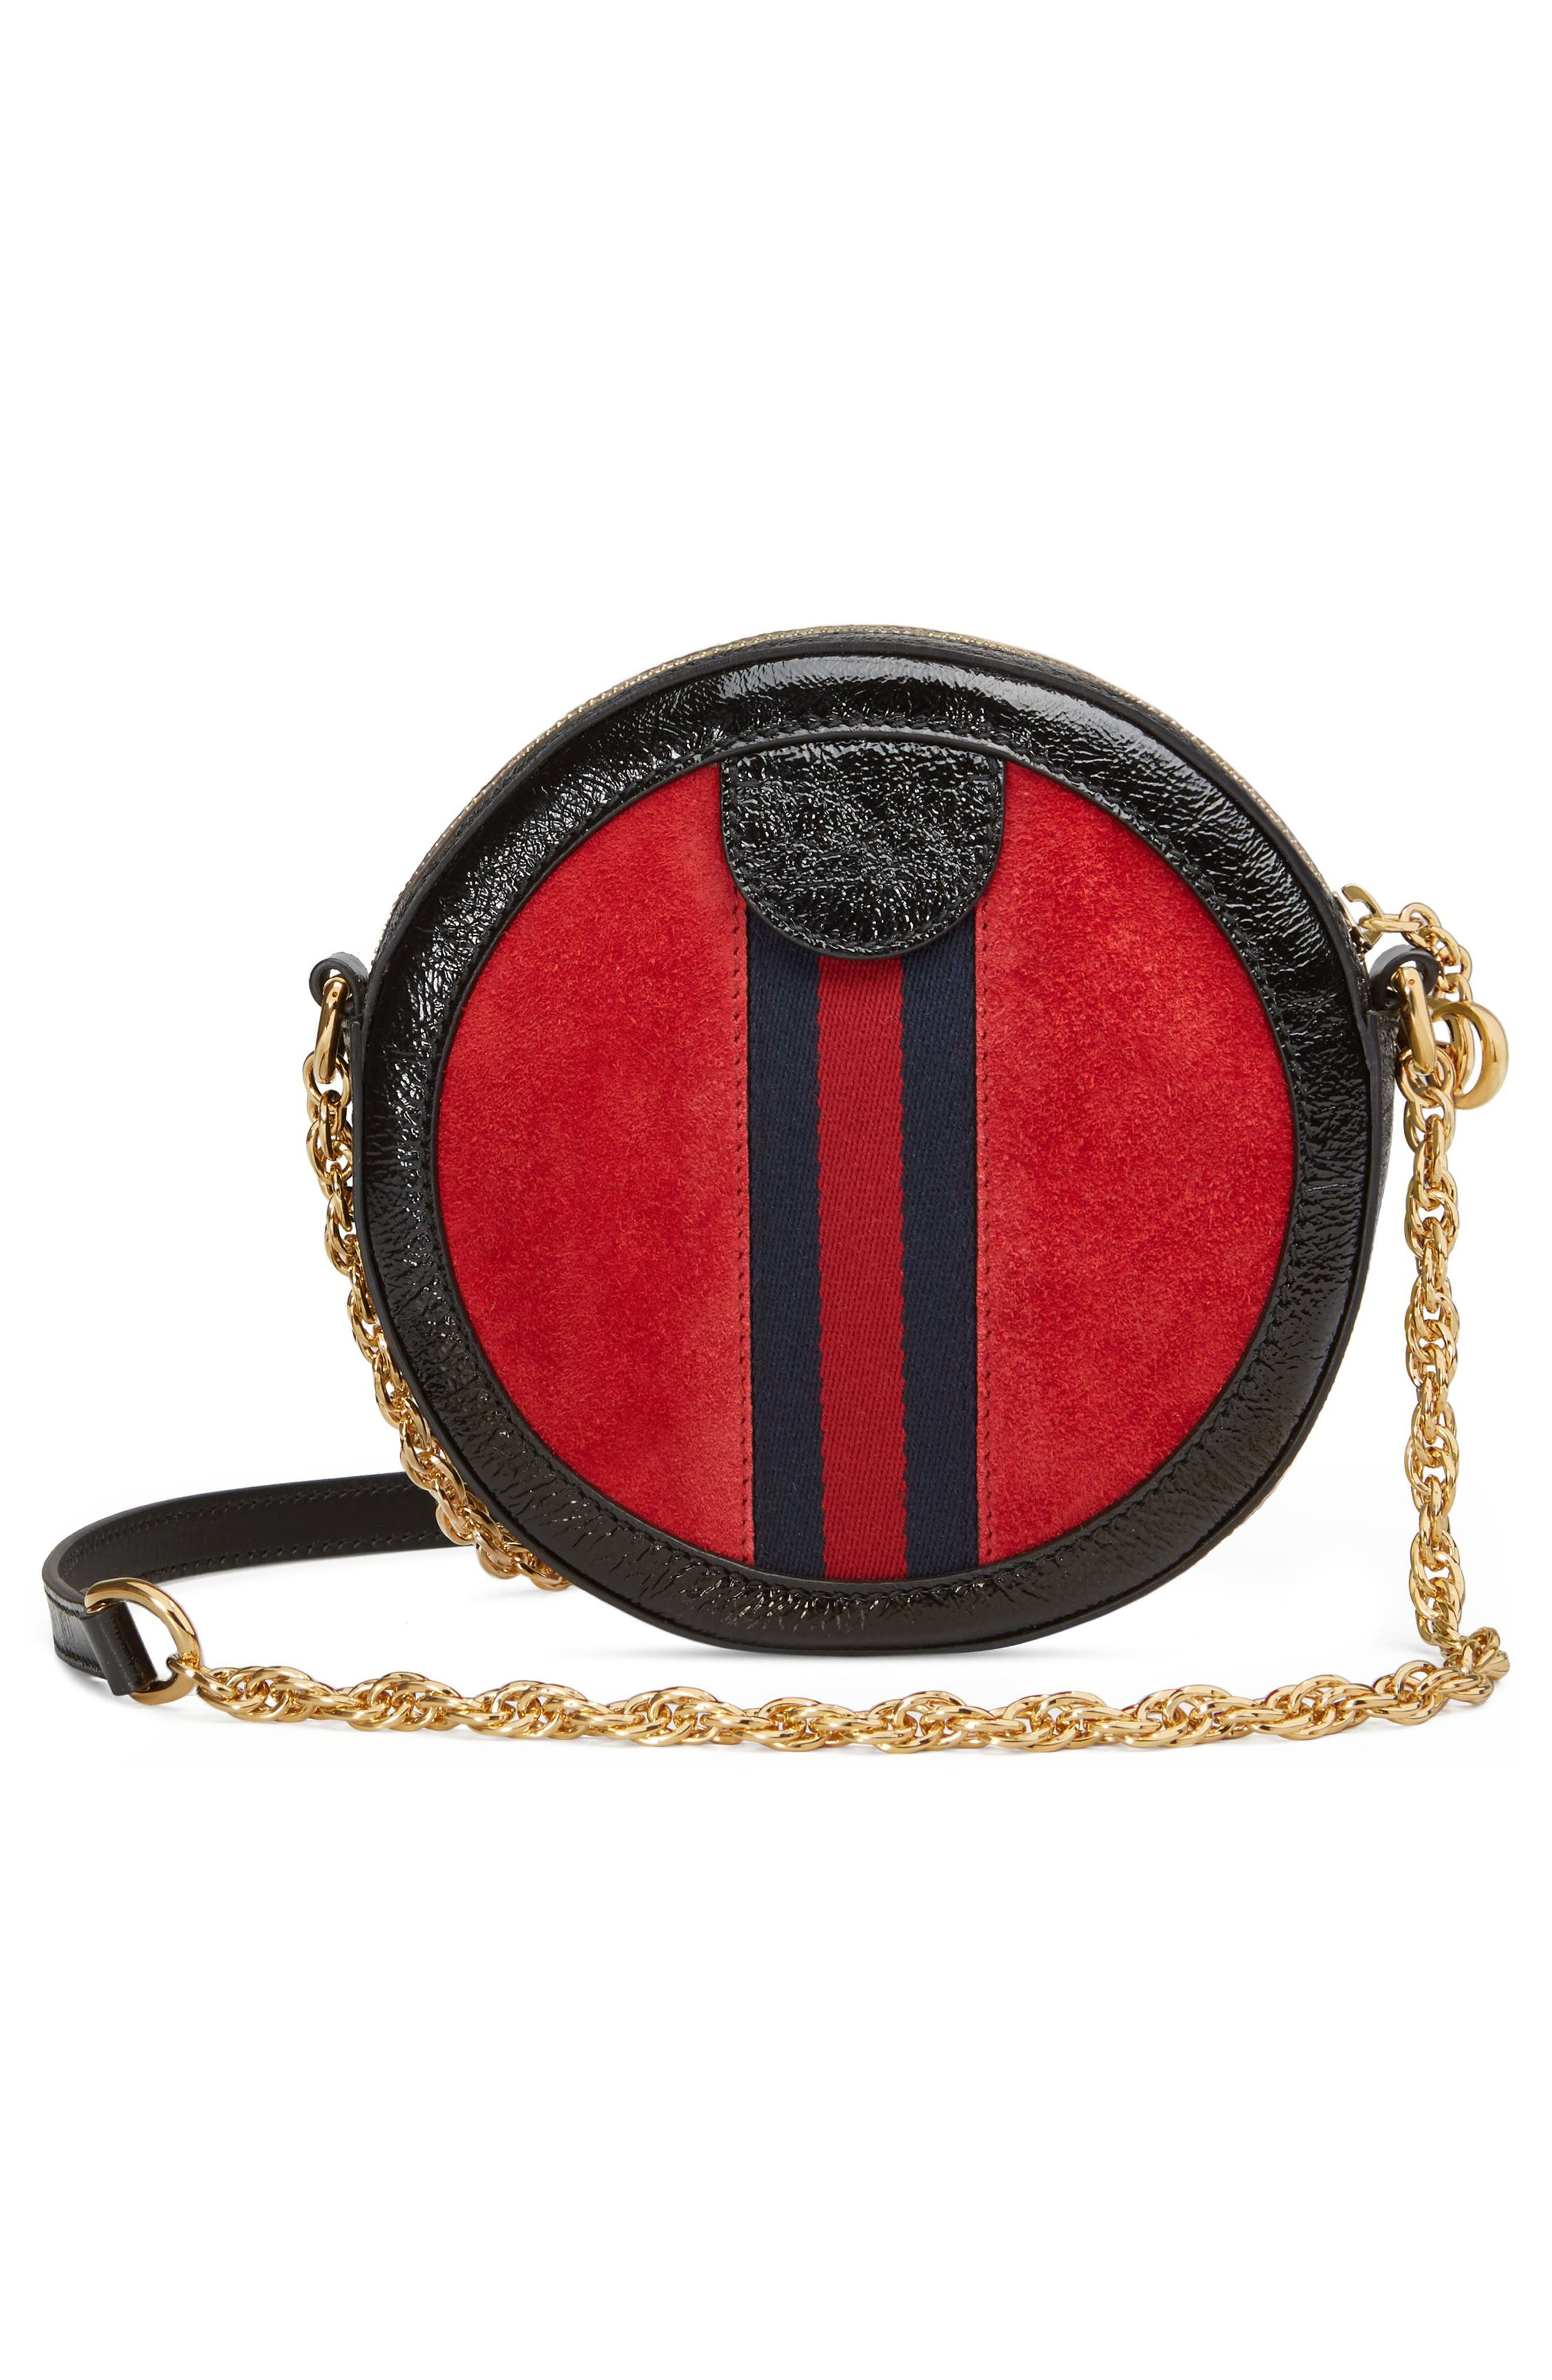 GUCCI,                             Mini Ophidia Round Shoulder Bag,                             Alternate thumbnail 2, color,                             HIBISCUS RED/ NERO/ BLUE